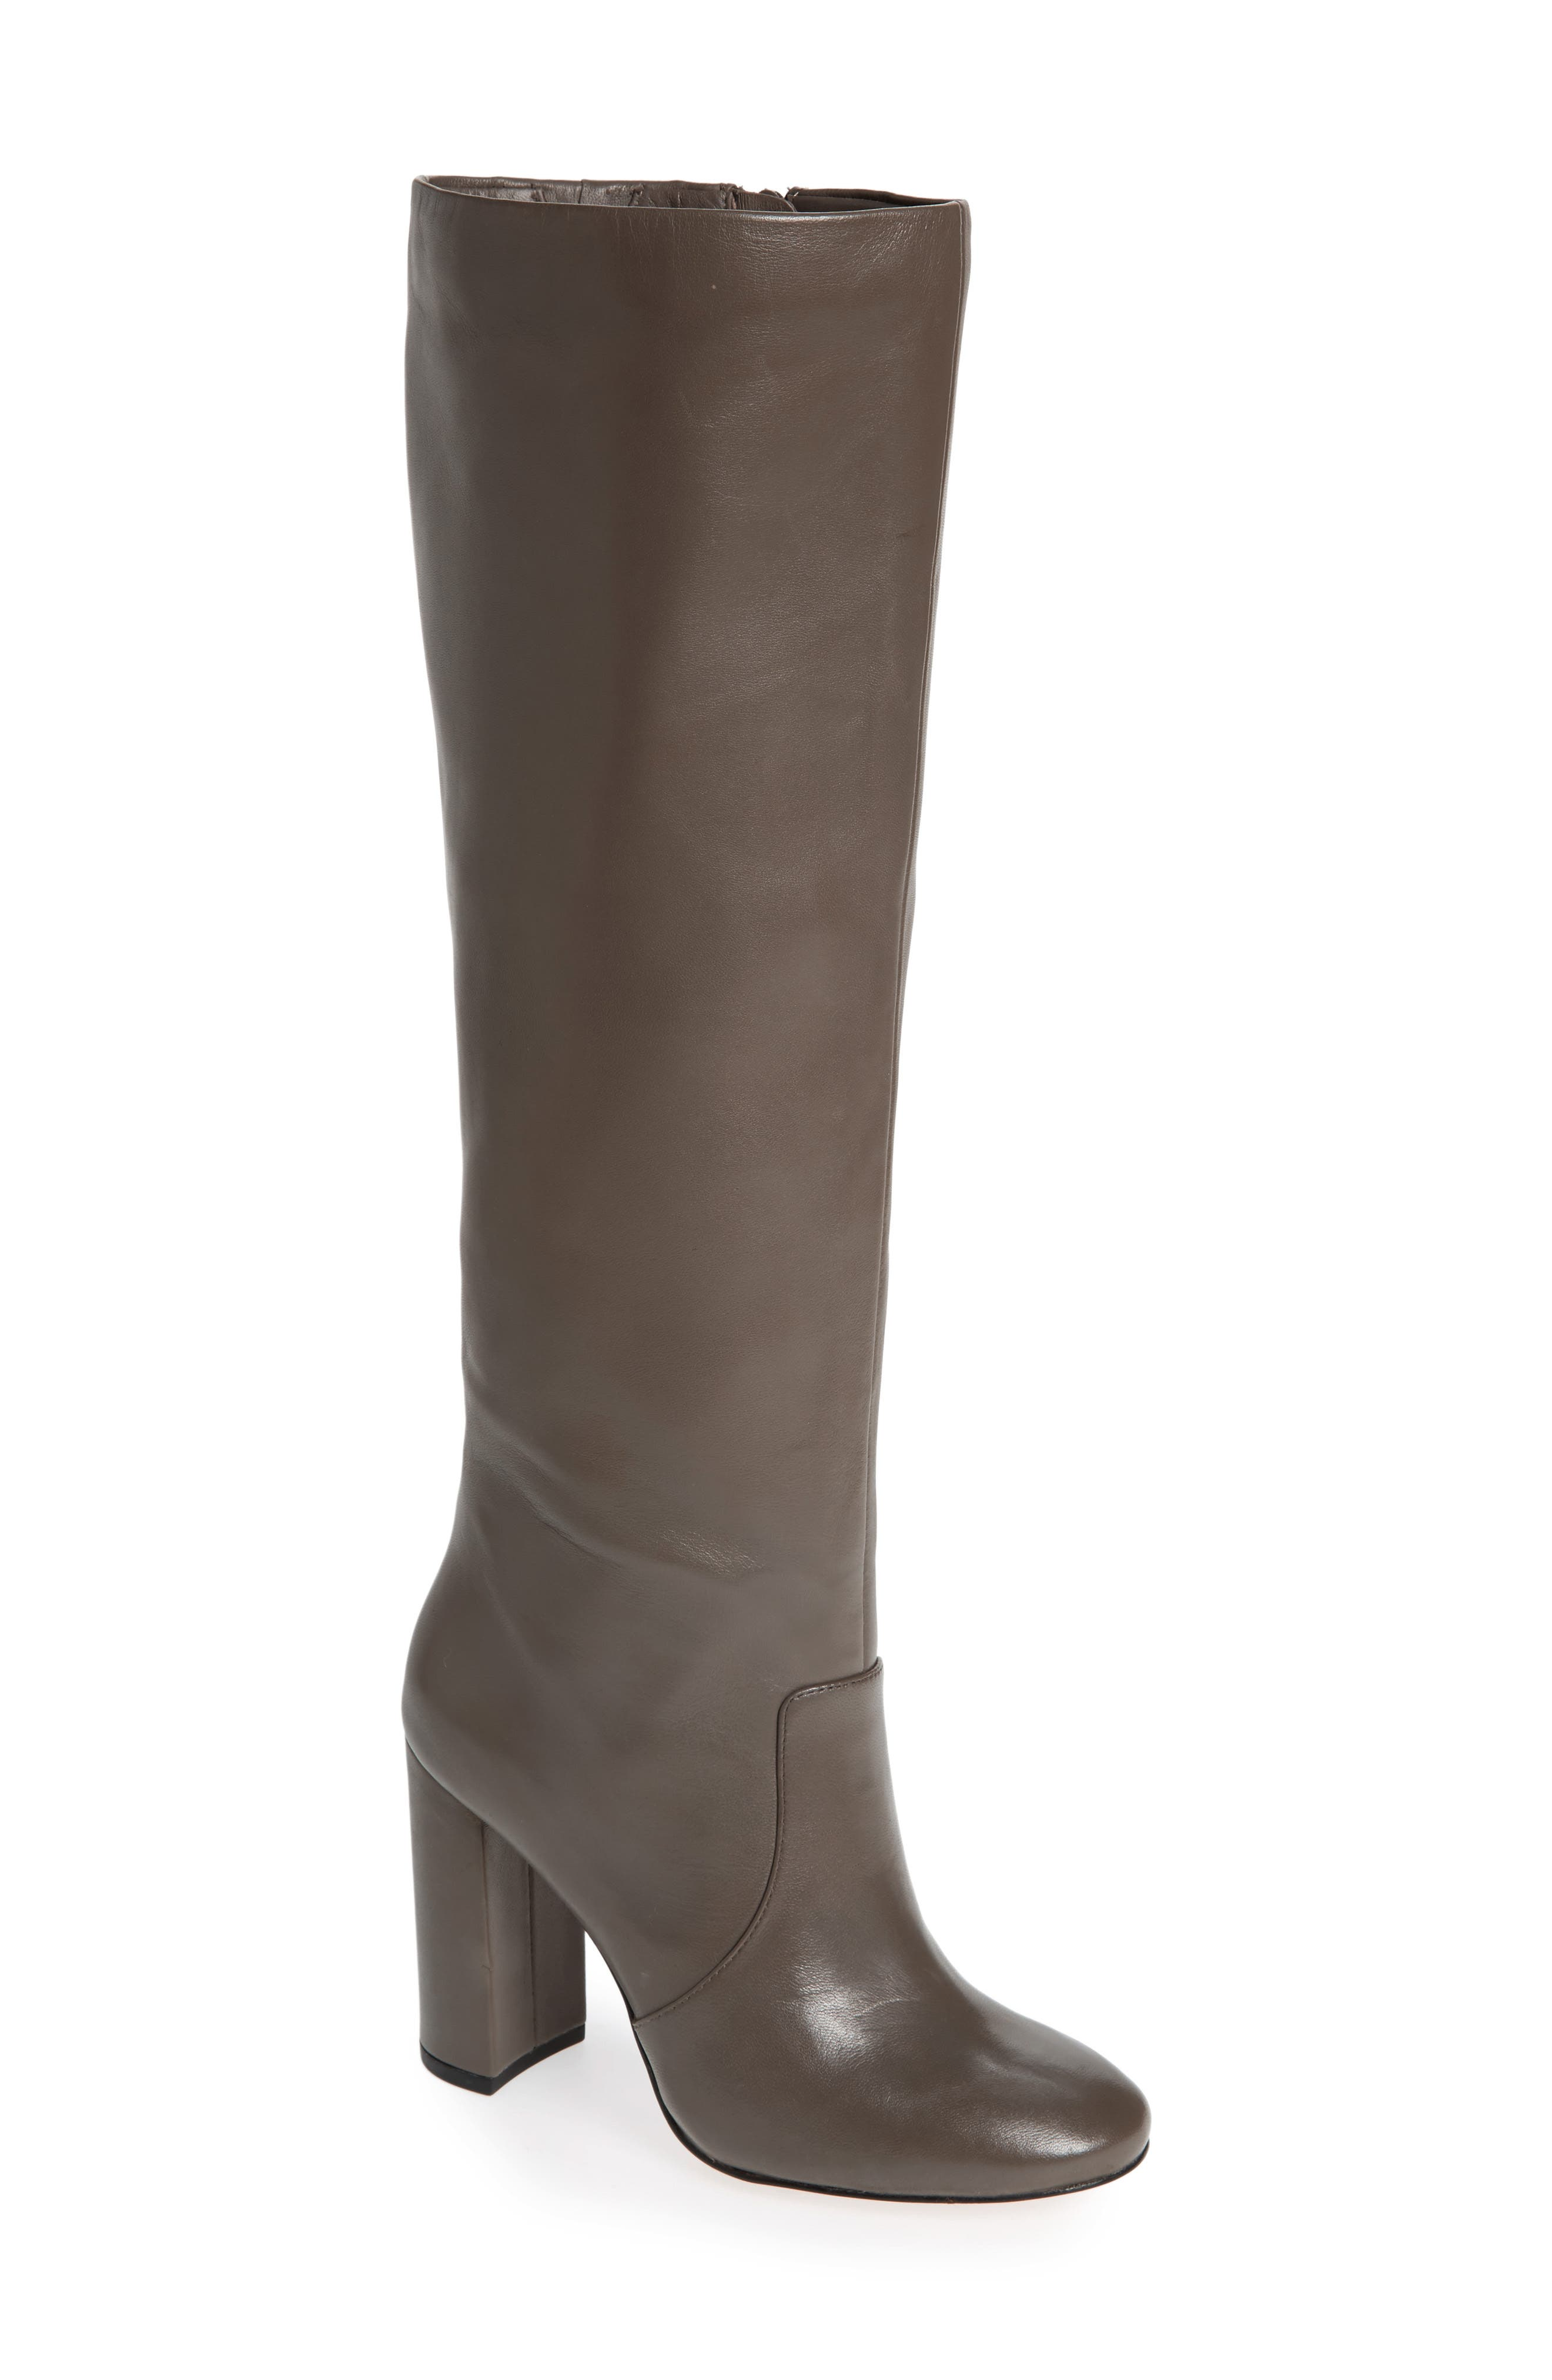 Roslin Knee High Boot,                             Main thumbnail 1, color,                             Graphite Leather